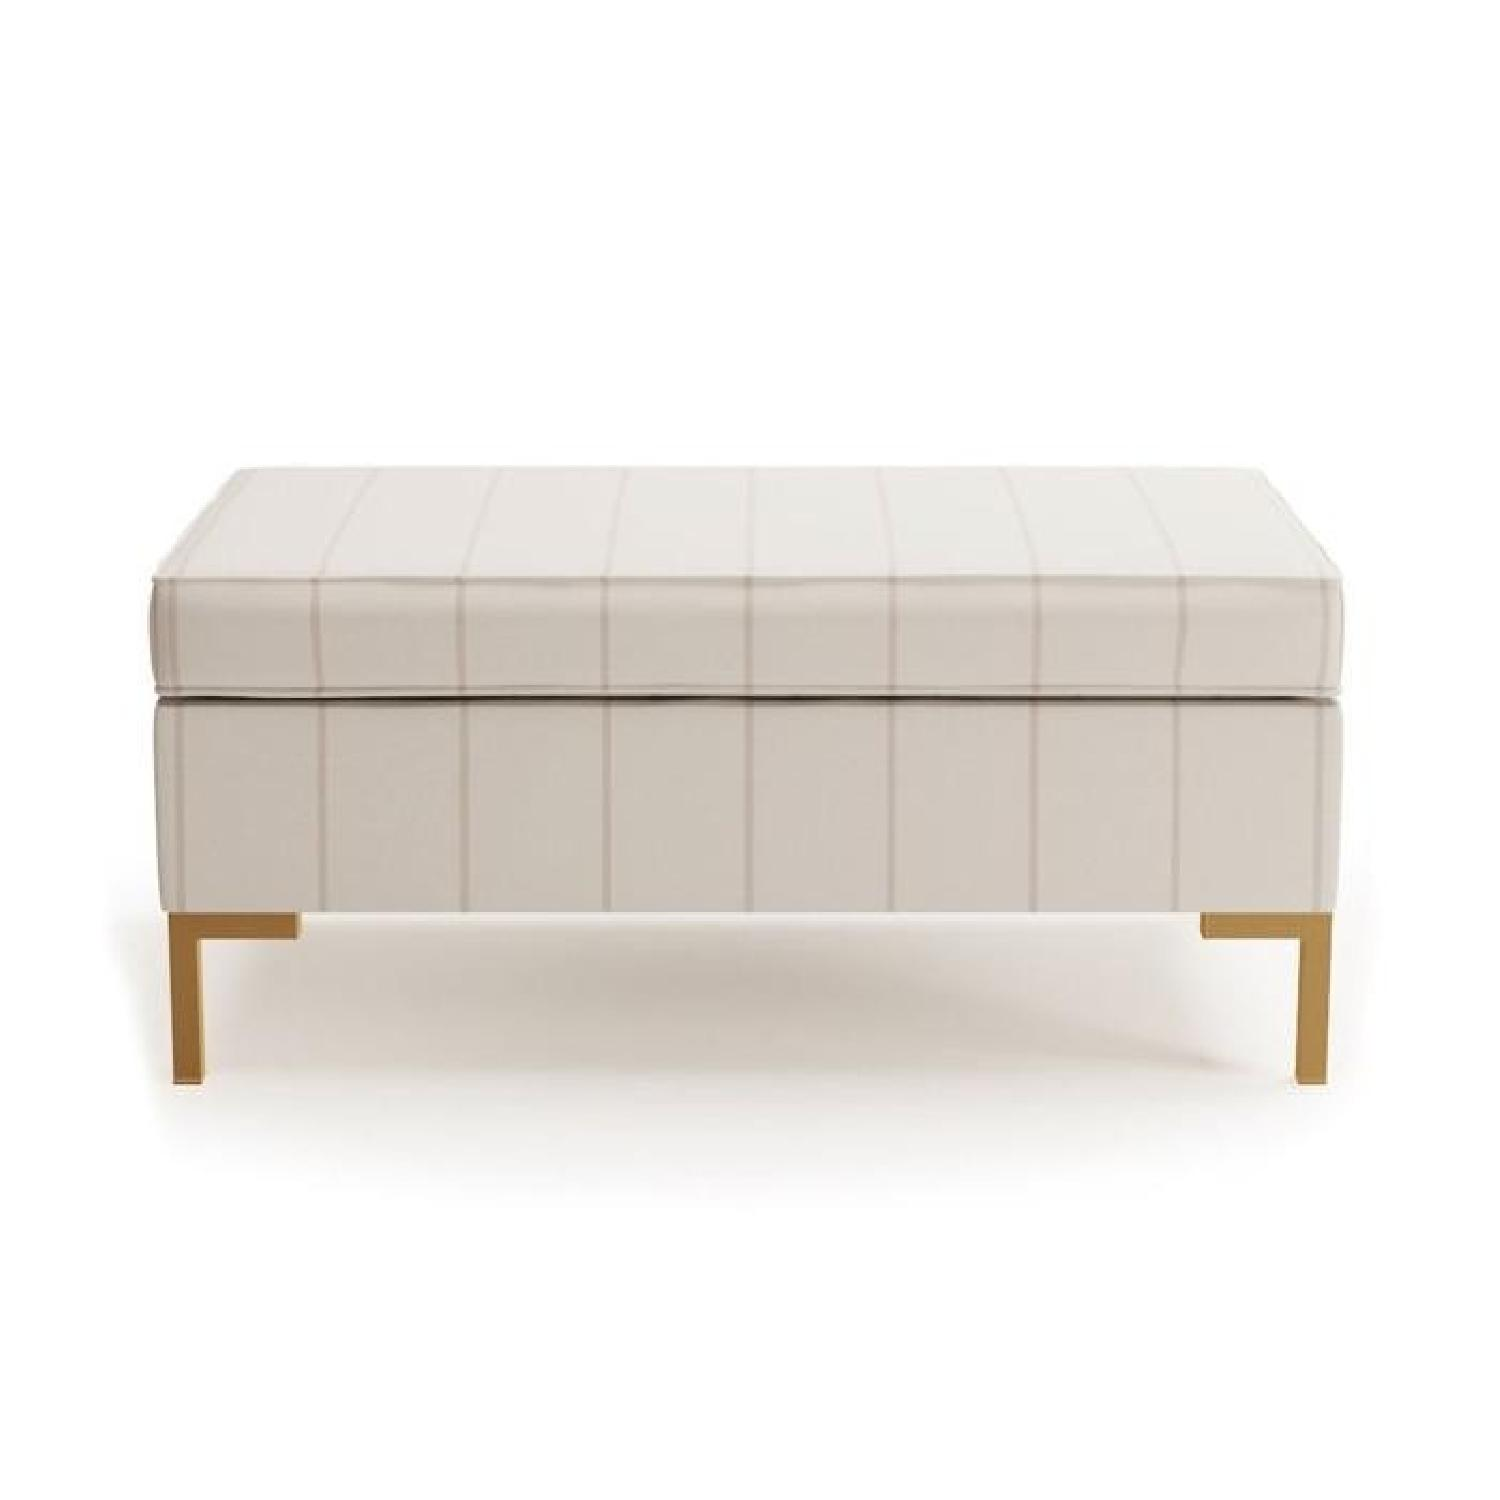 The Inside Classic Cocktail Ottoman/Bench/Coffee Table